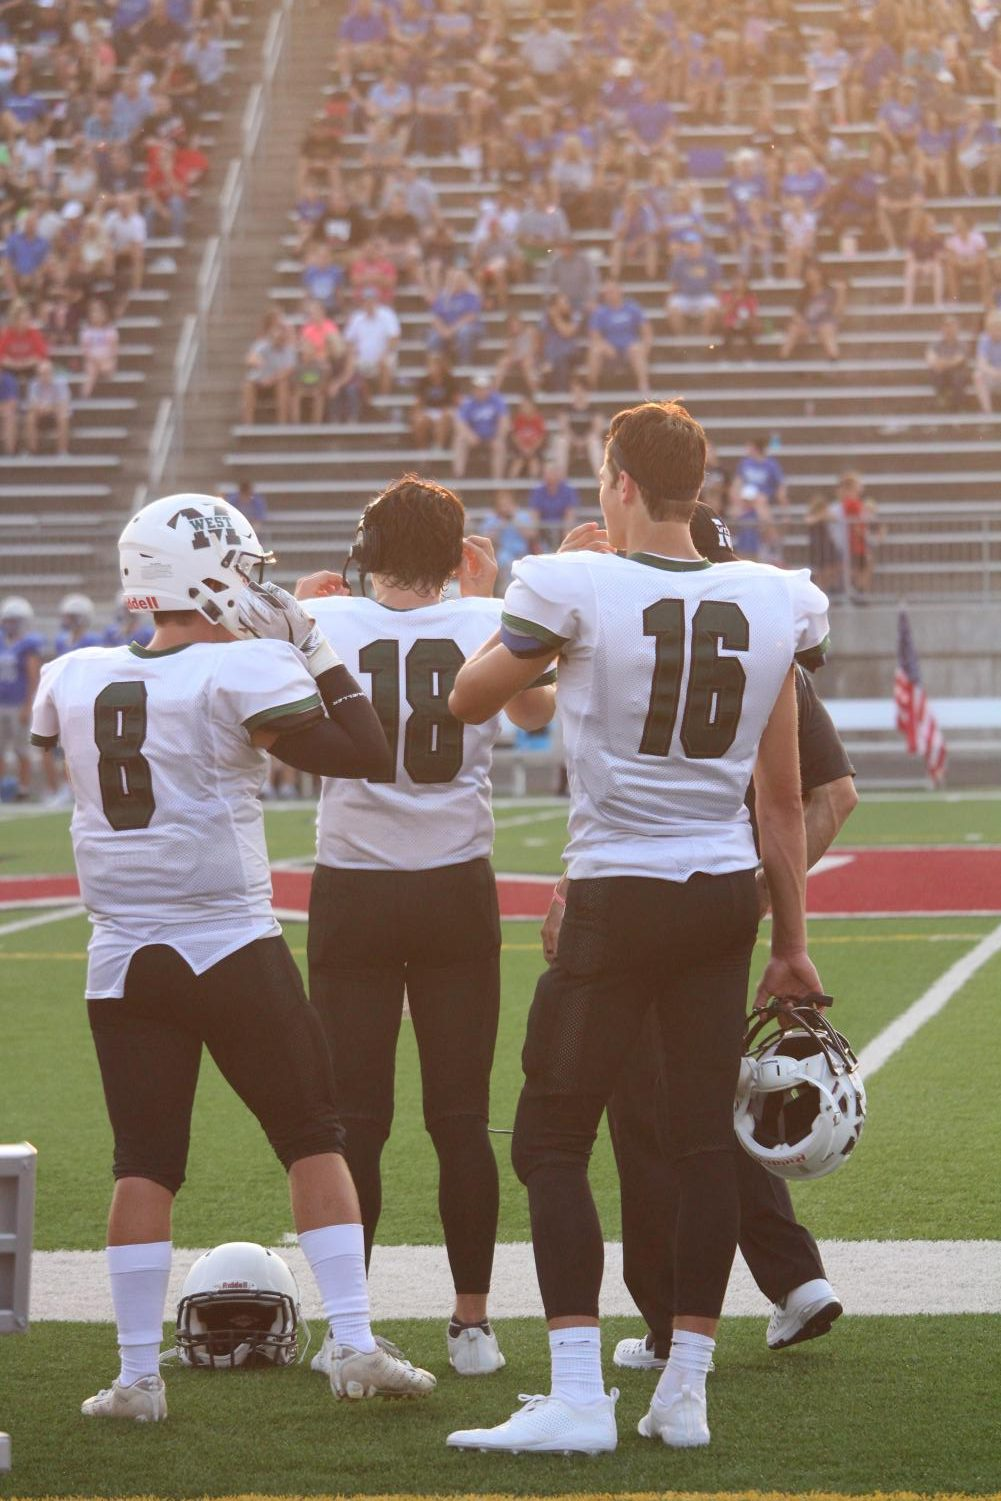 Nate Glantz (#18) prepares to get onto the field accompanied by Tristian Gomes (#16) on the sideline.